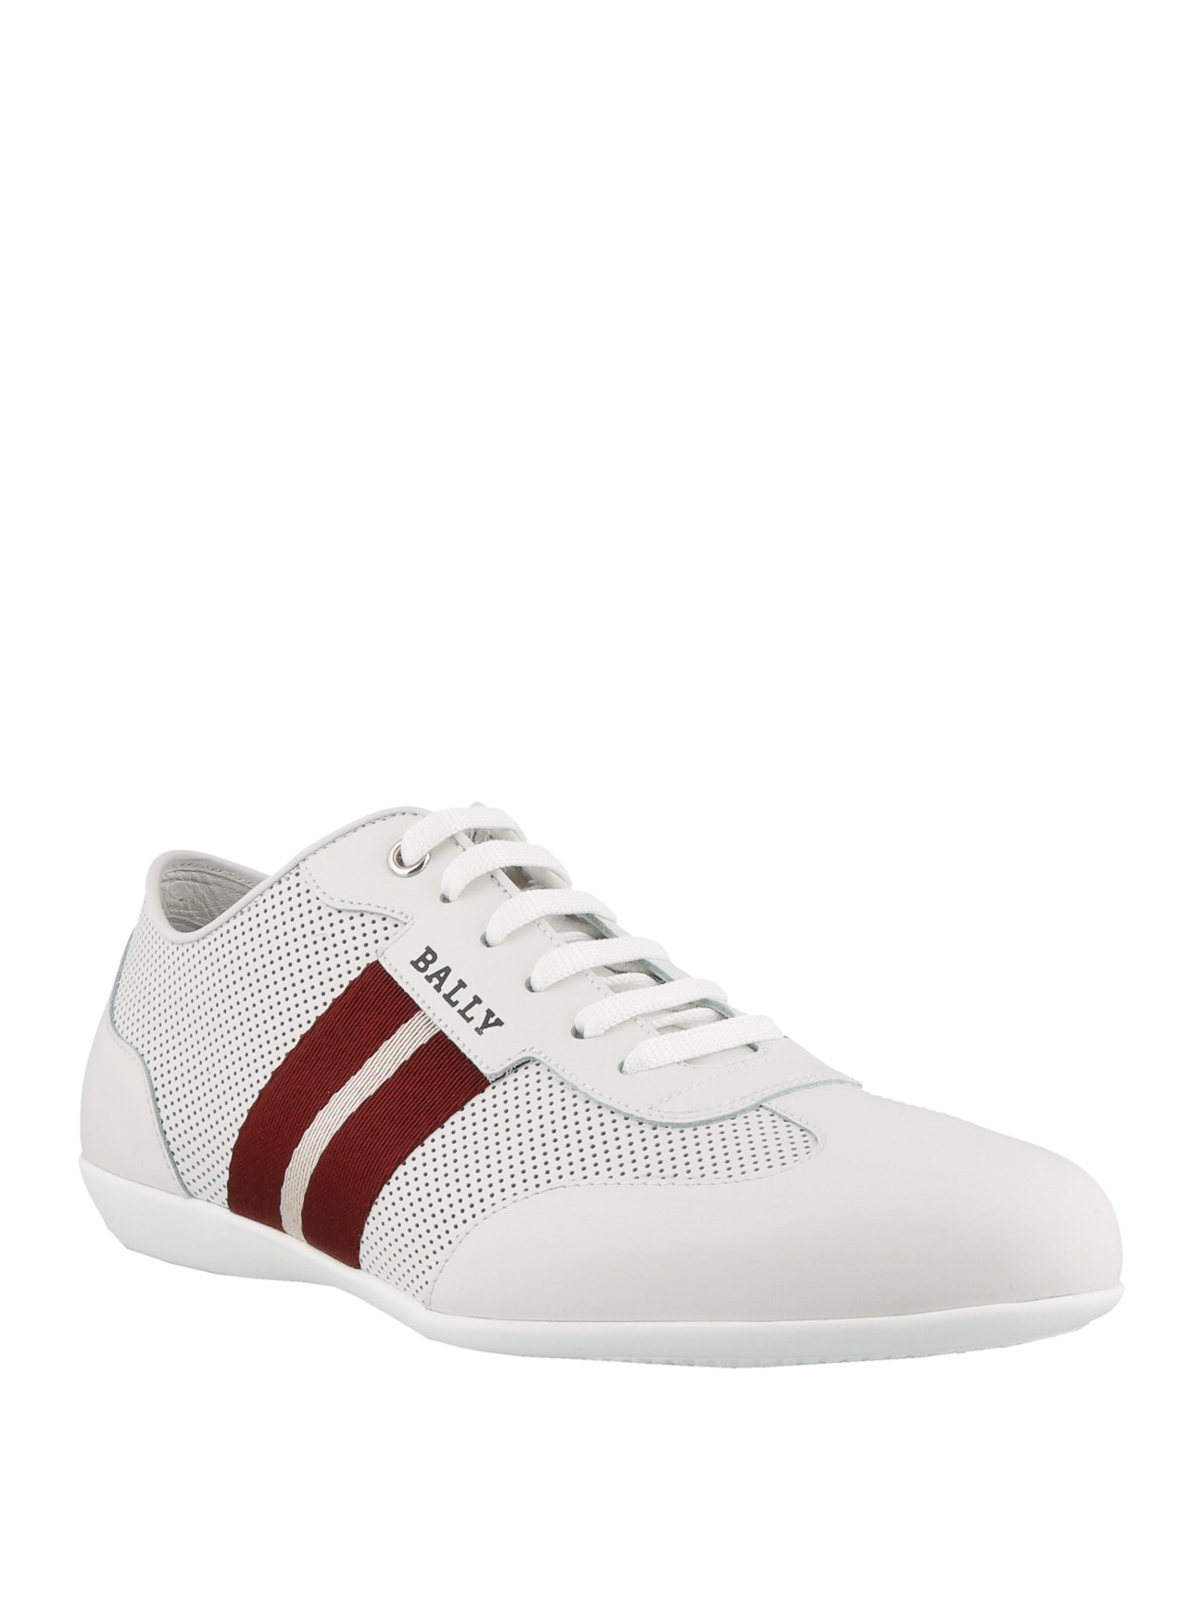 Bally - Harlam white perforated leather